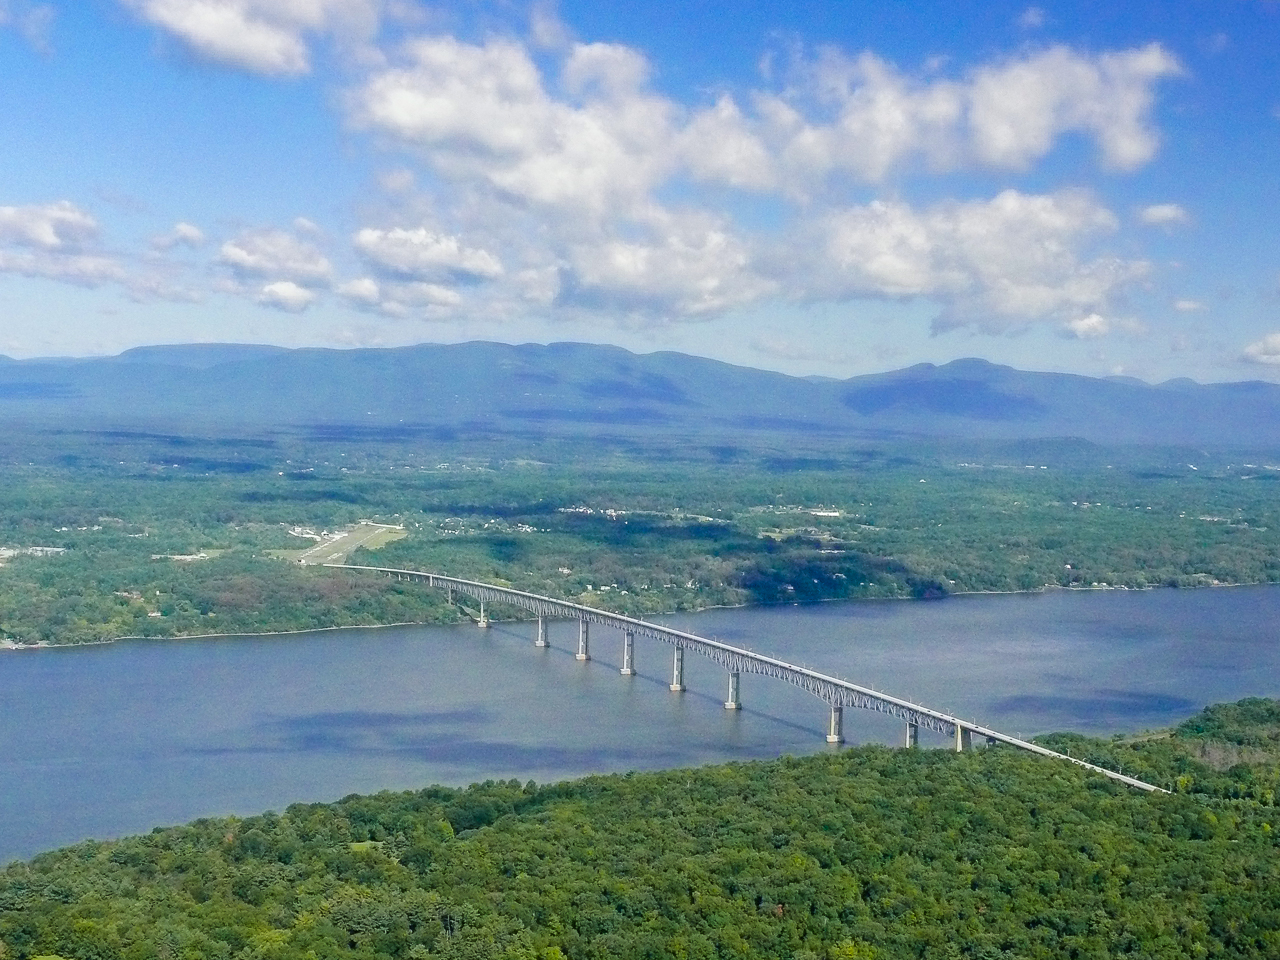 Kingston - Rhinecliff Bridge